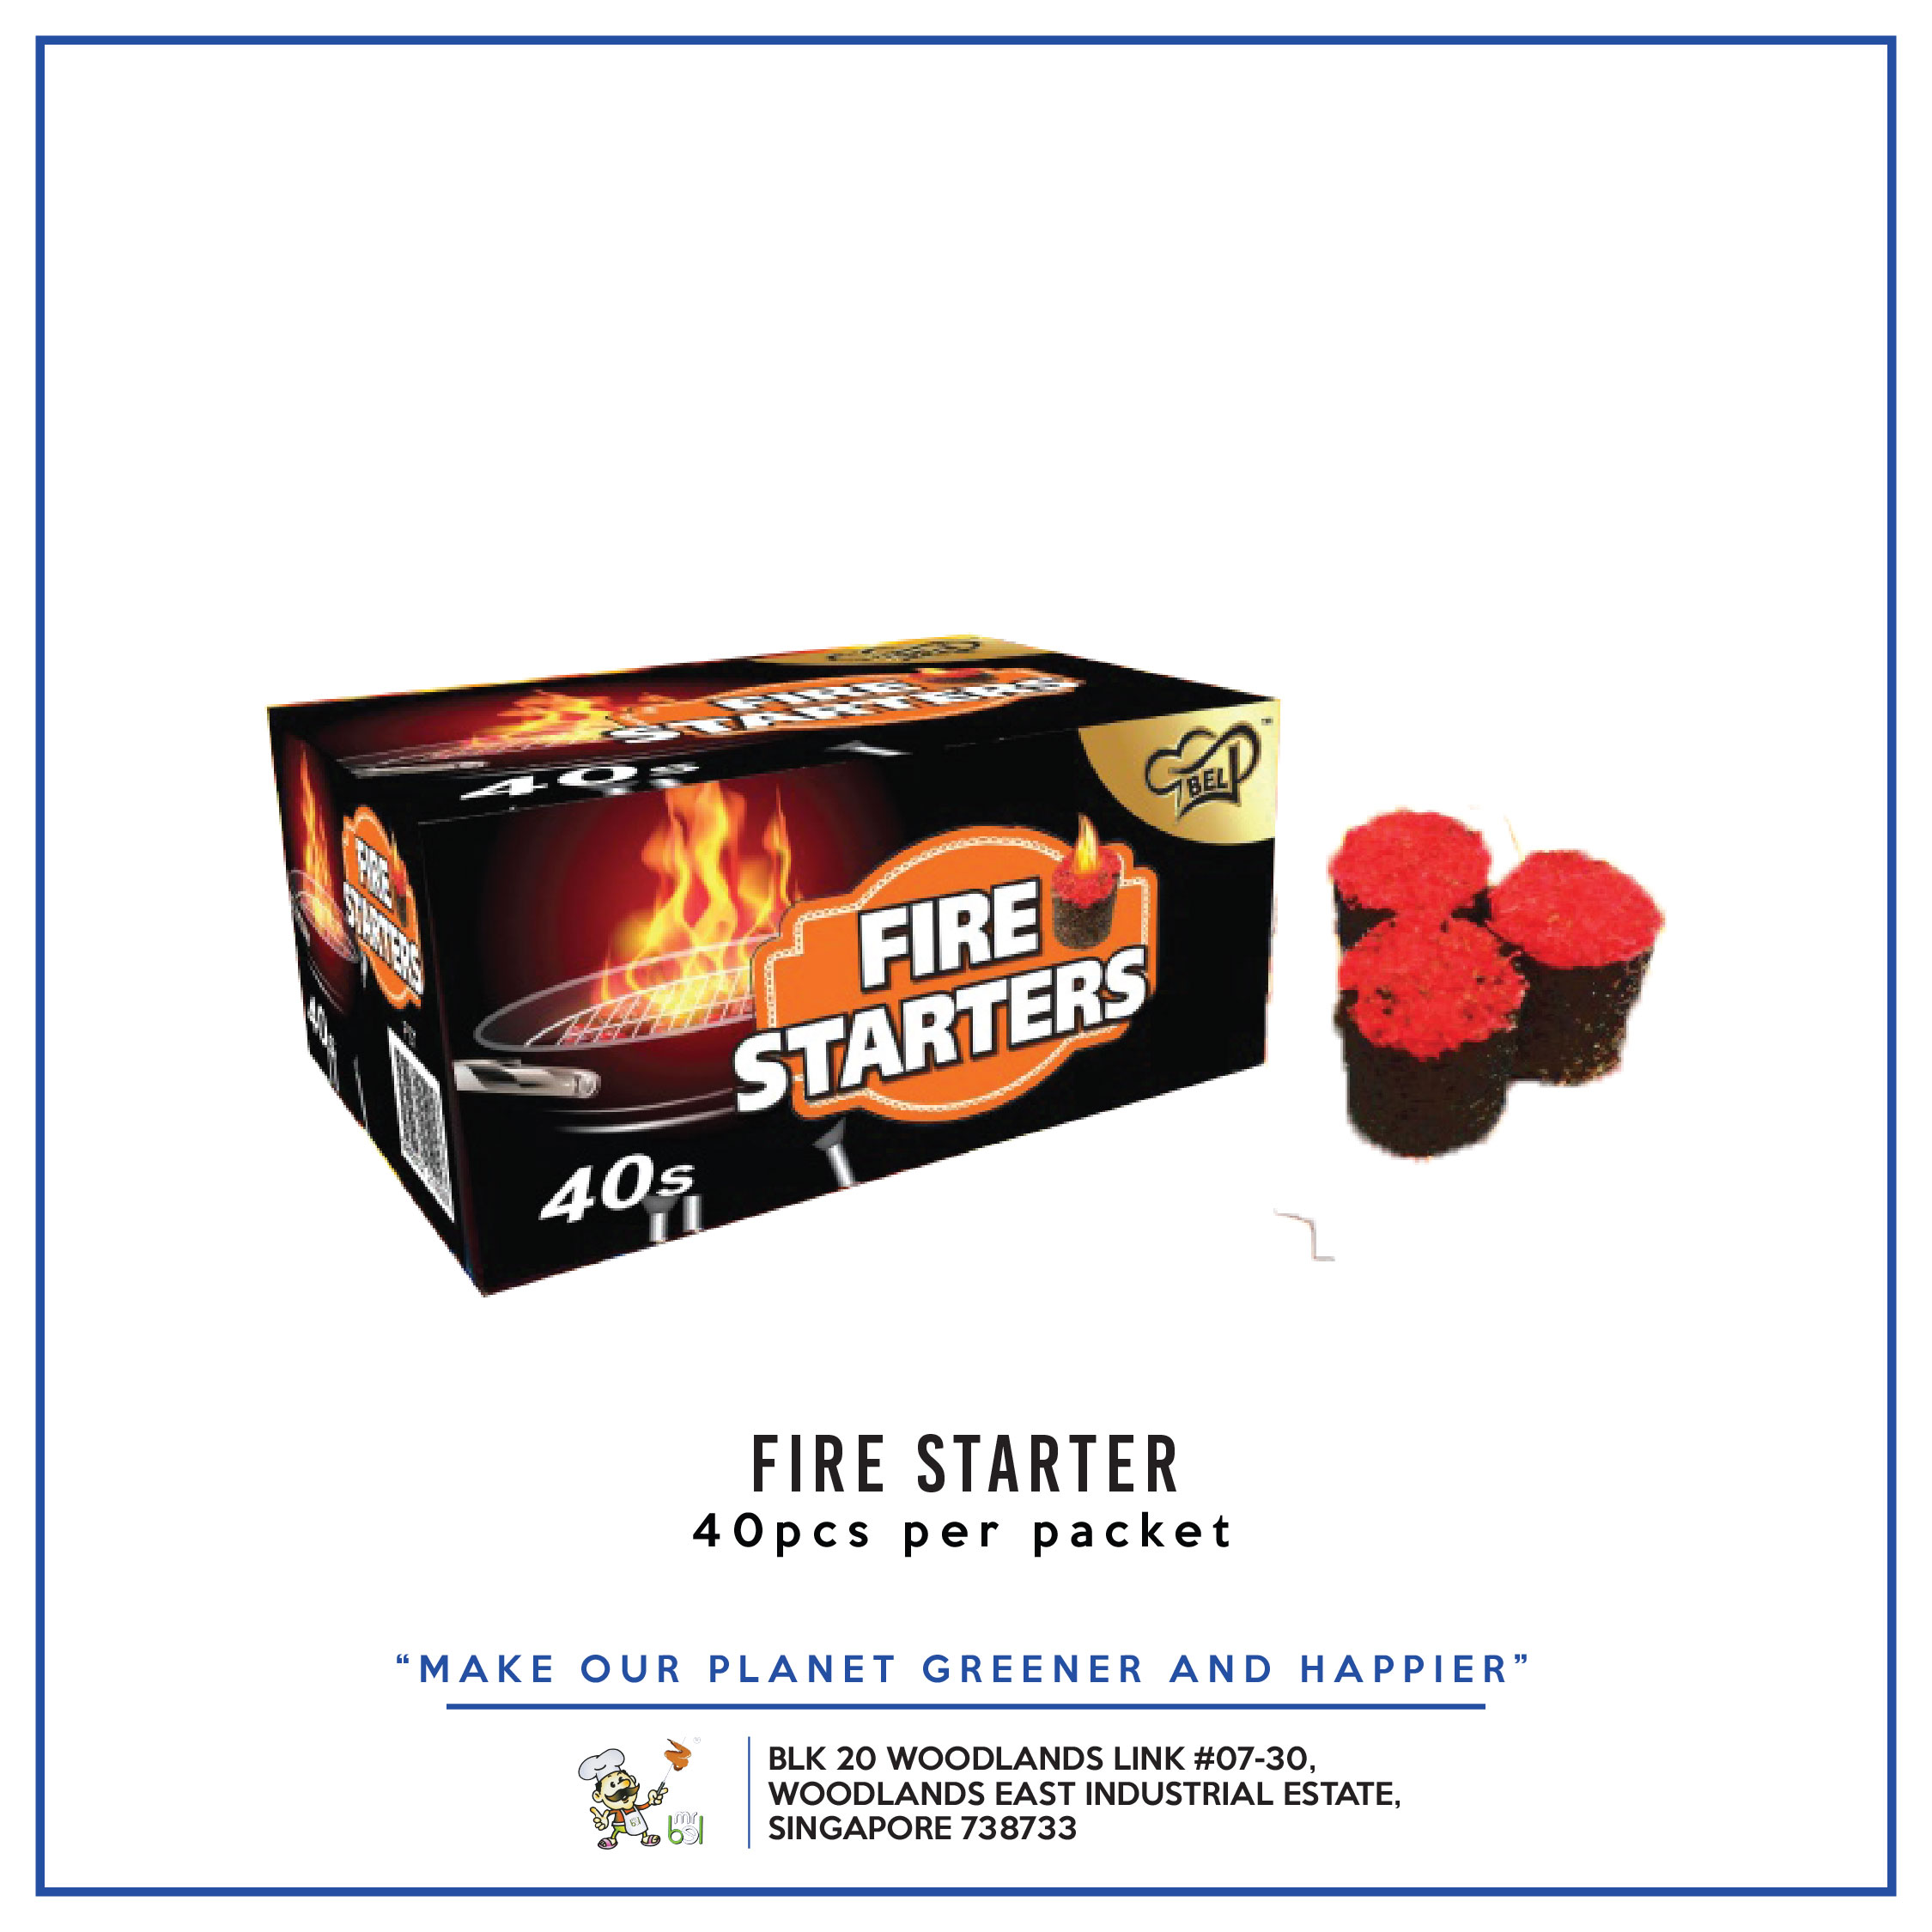 Bel Fire Starter 40s per pack - 1 Carton (36packs)